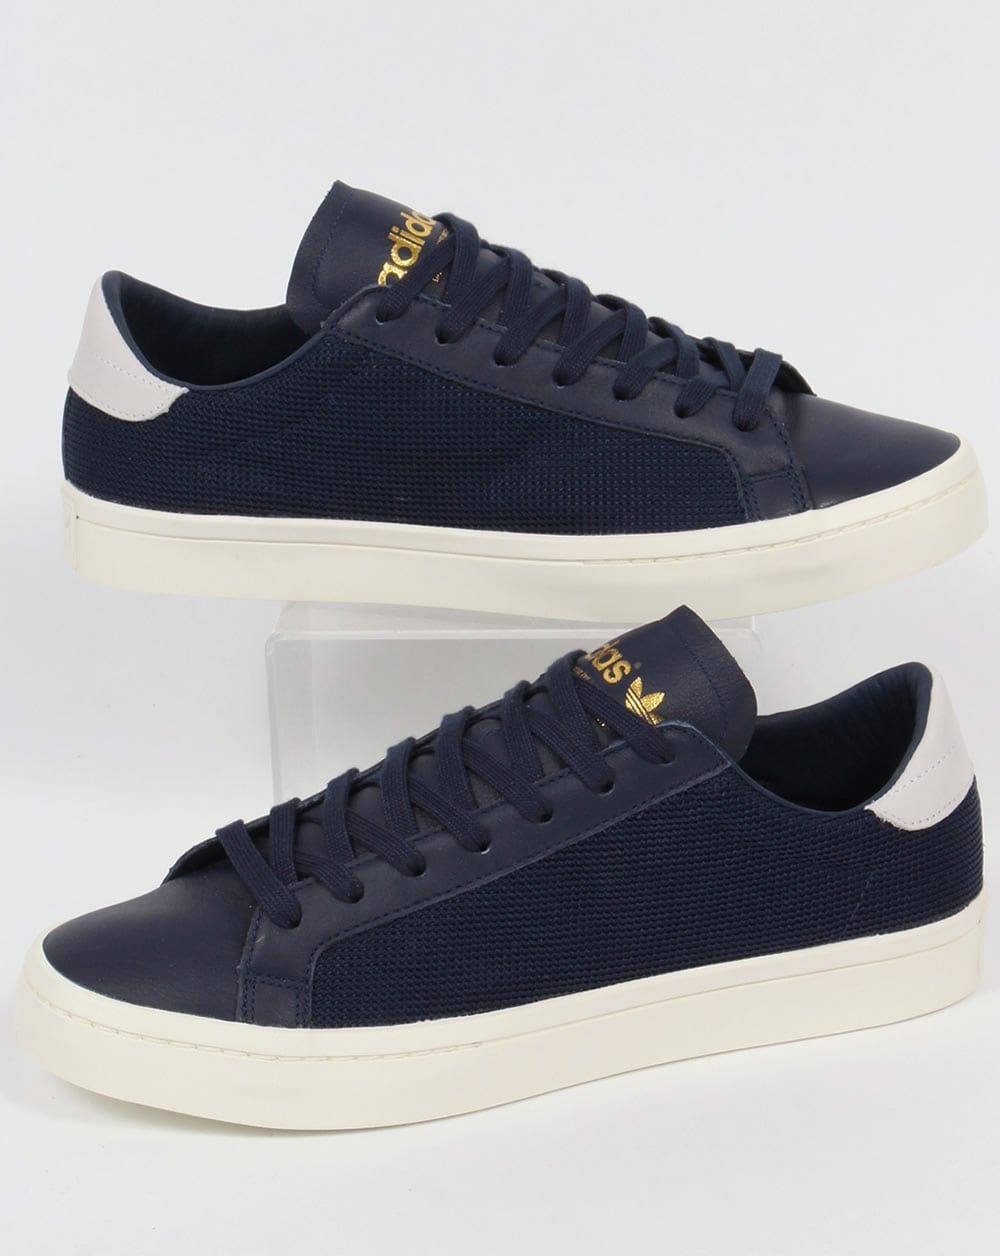 adidas originals court vantage trainers navy shoes low top. Black Bedroom Furniture Sets. Home Design Ideas